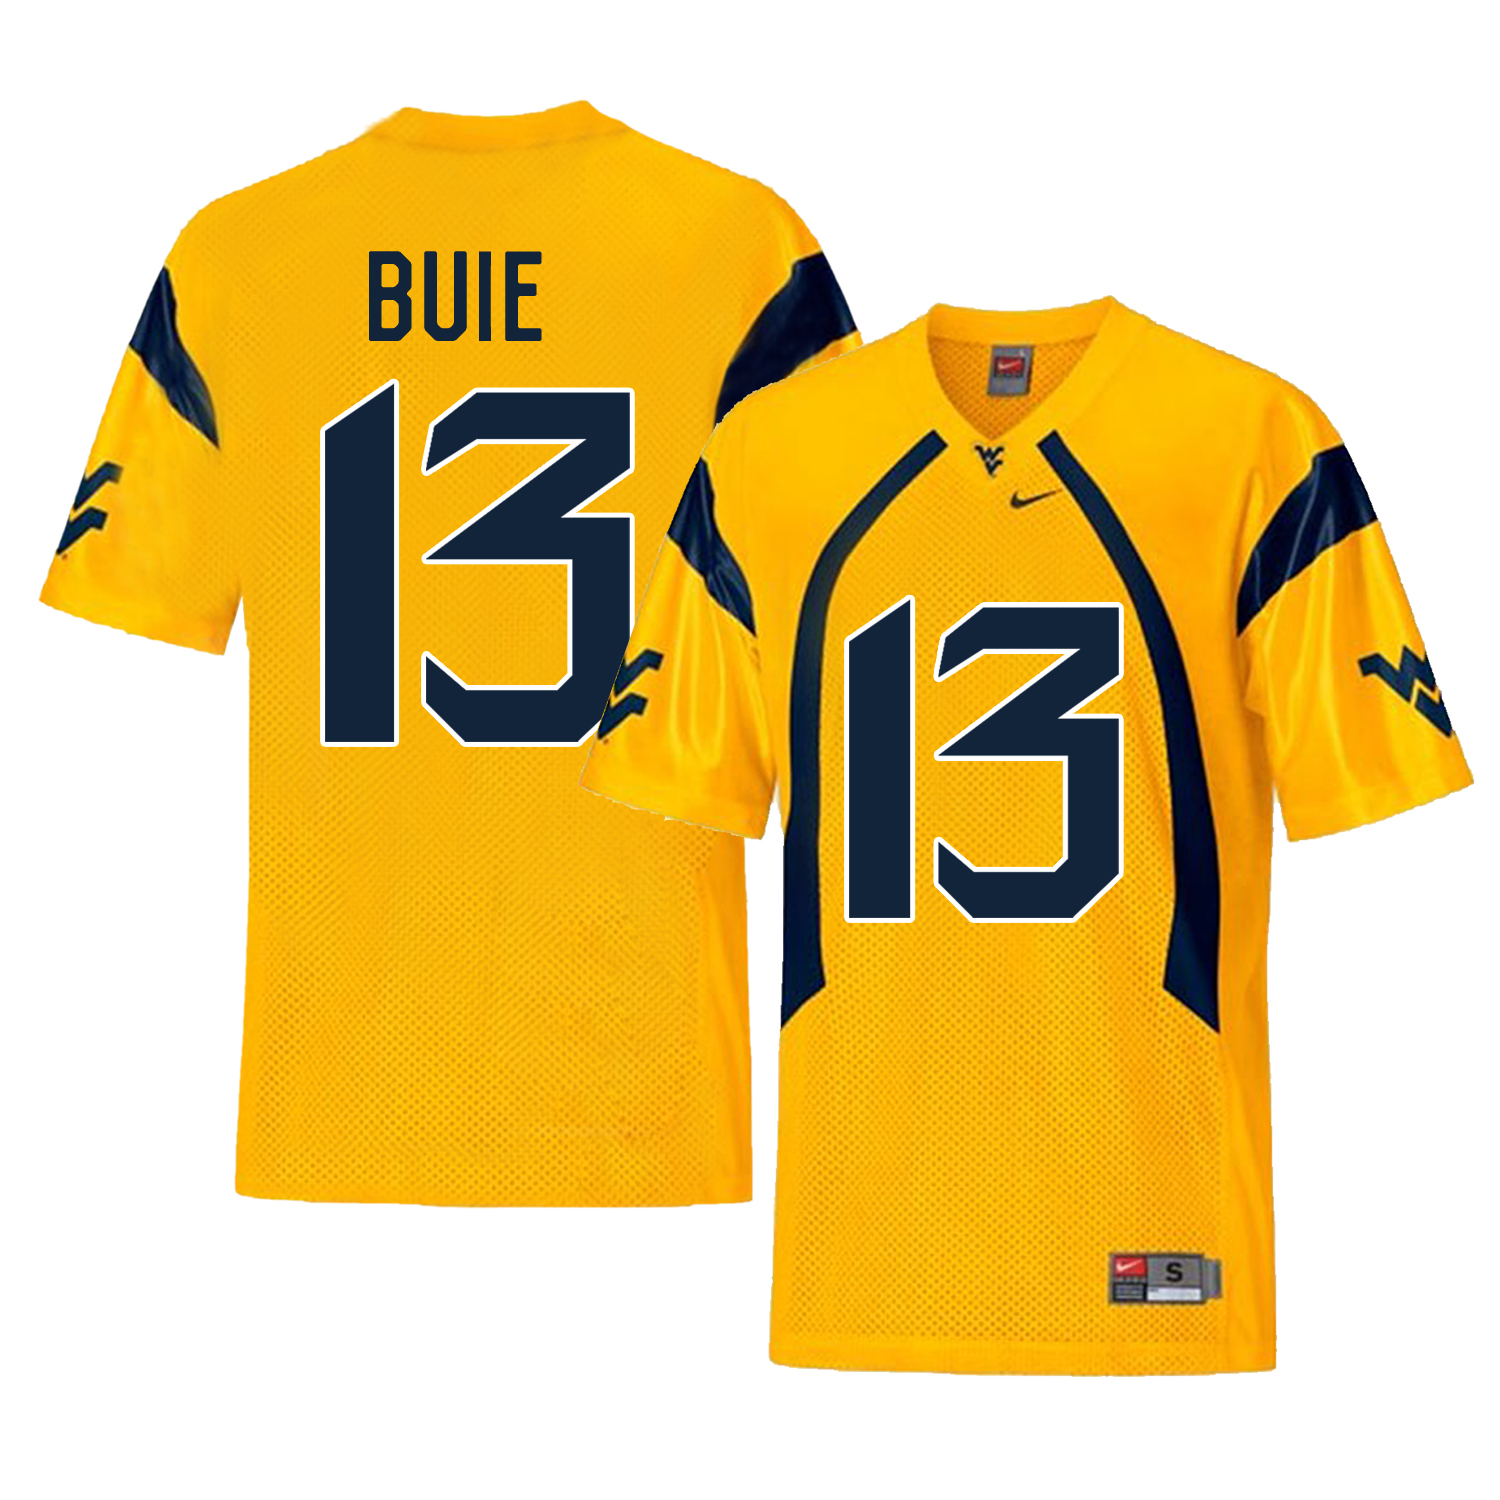 West Virginia Mountaineers 13 Andrew Buie Gold College Football Jersey